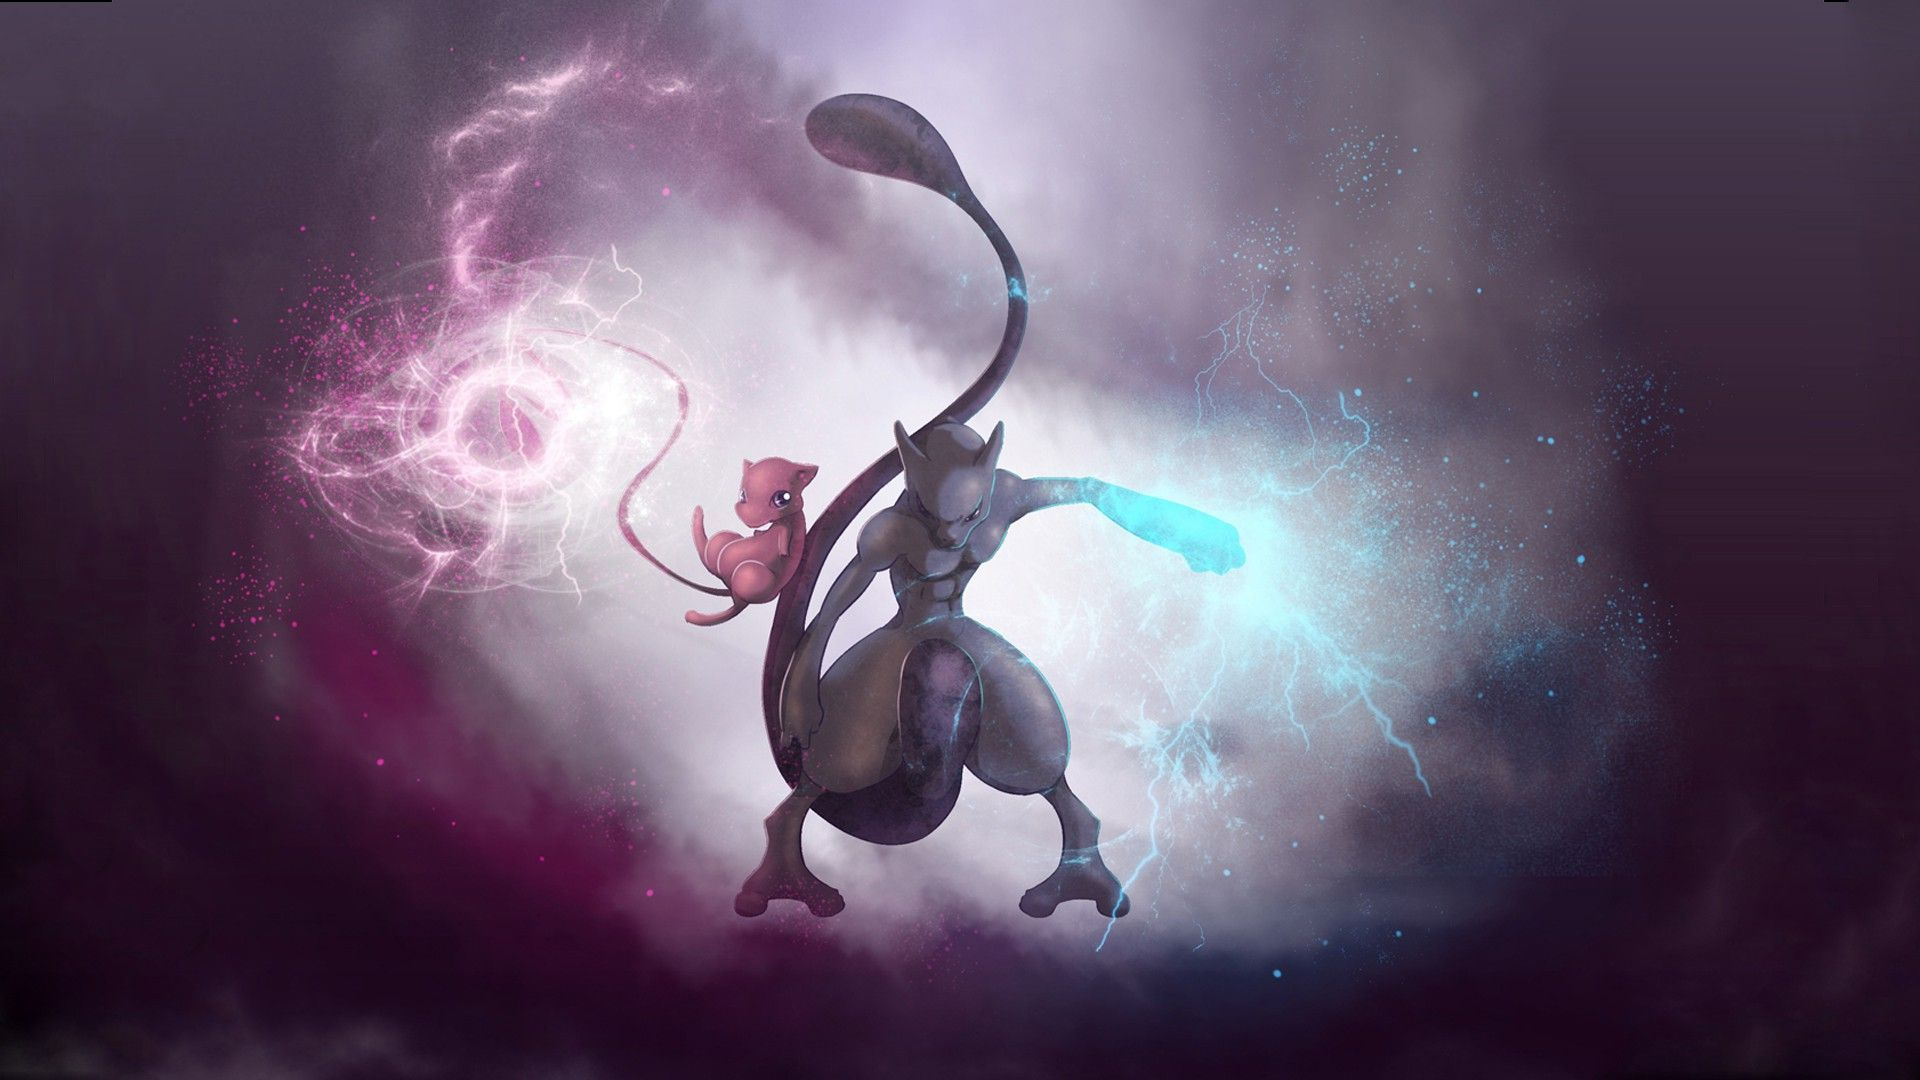 mewtwo pokemon game hd wallpaper 1920x1080 1563jpg Alienware Arena 1920x1080